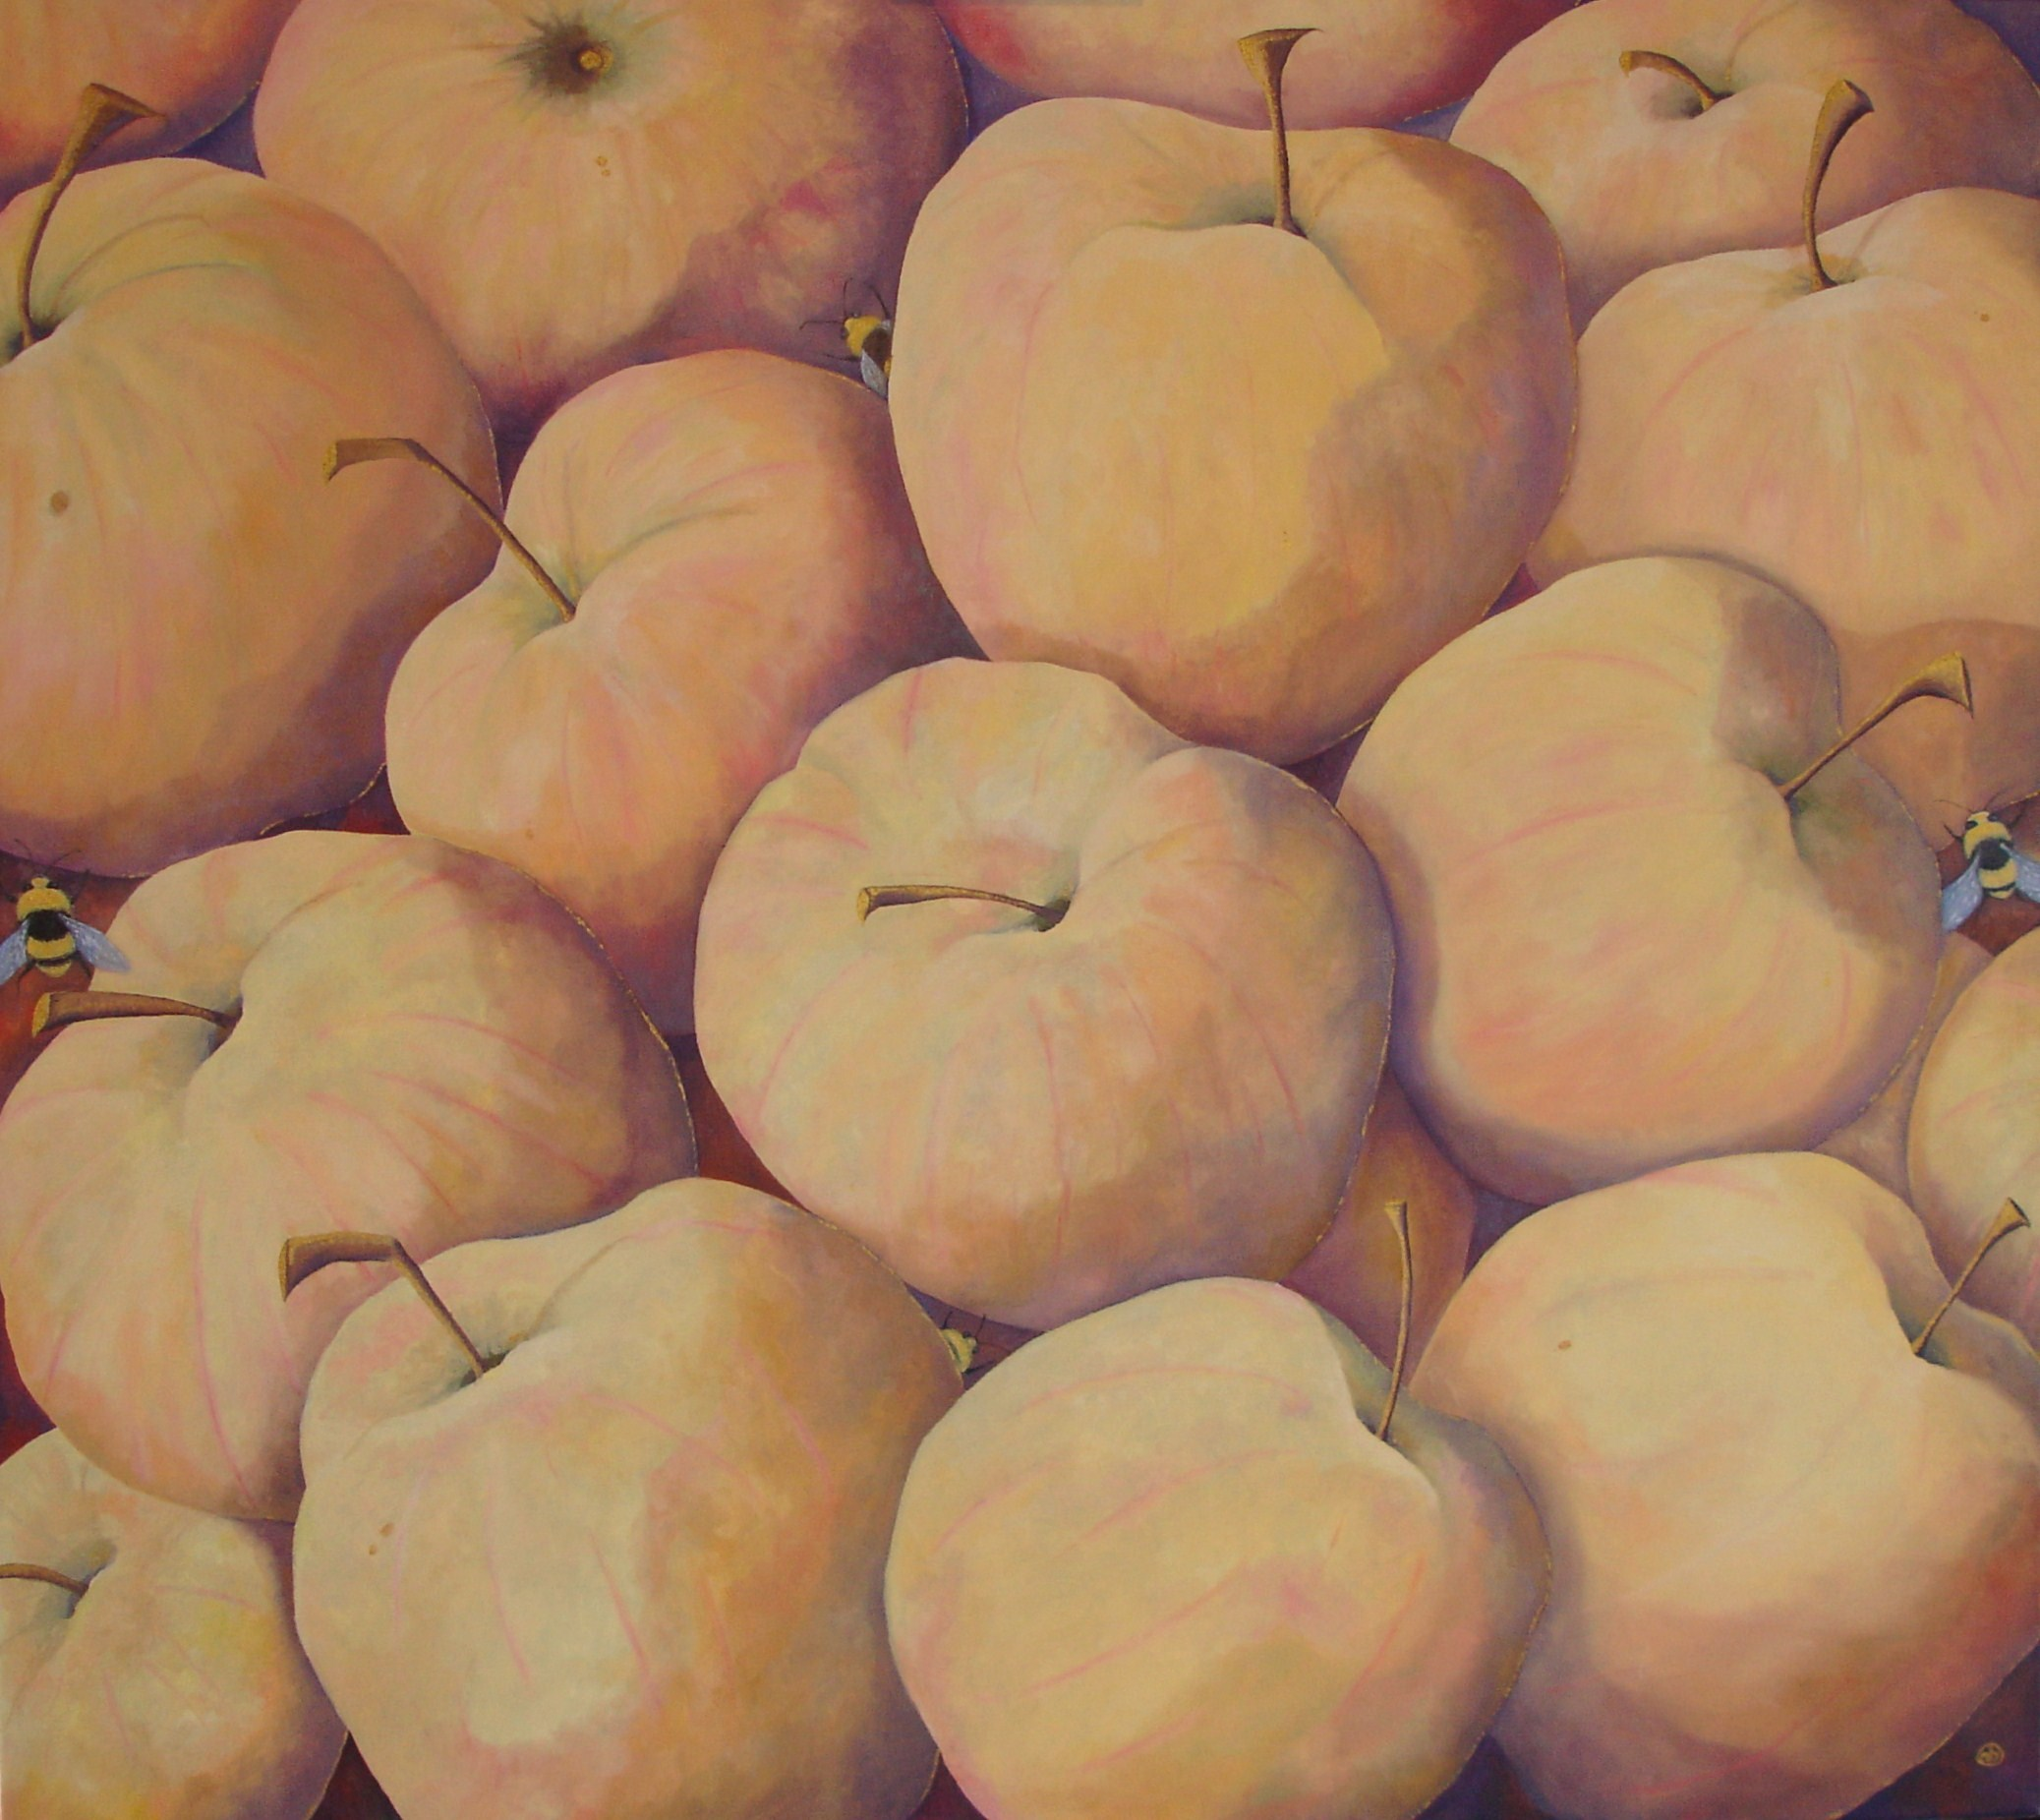 Apples 36 x 40 in